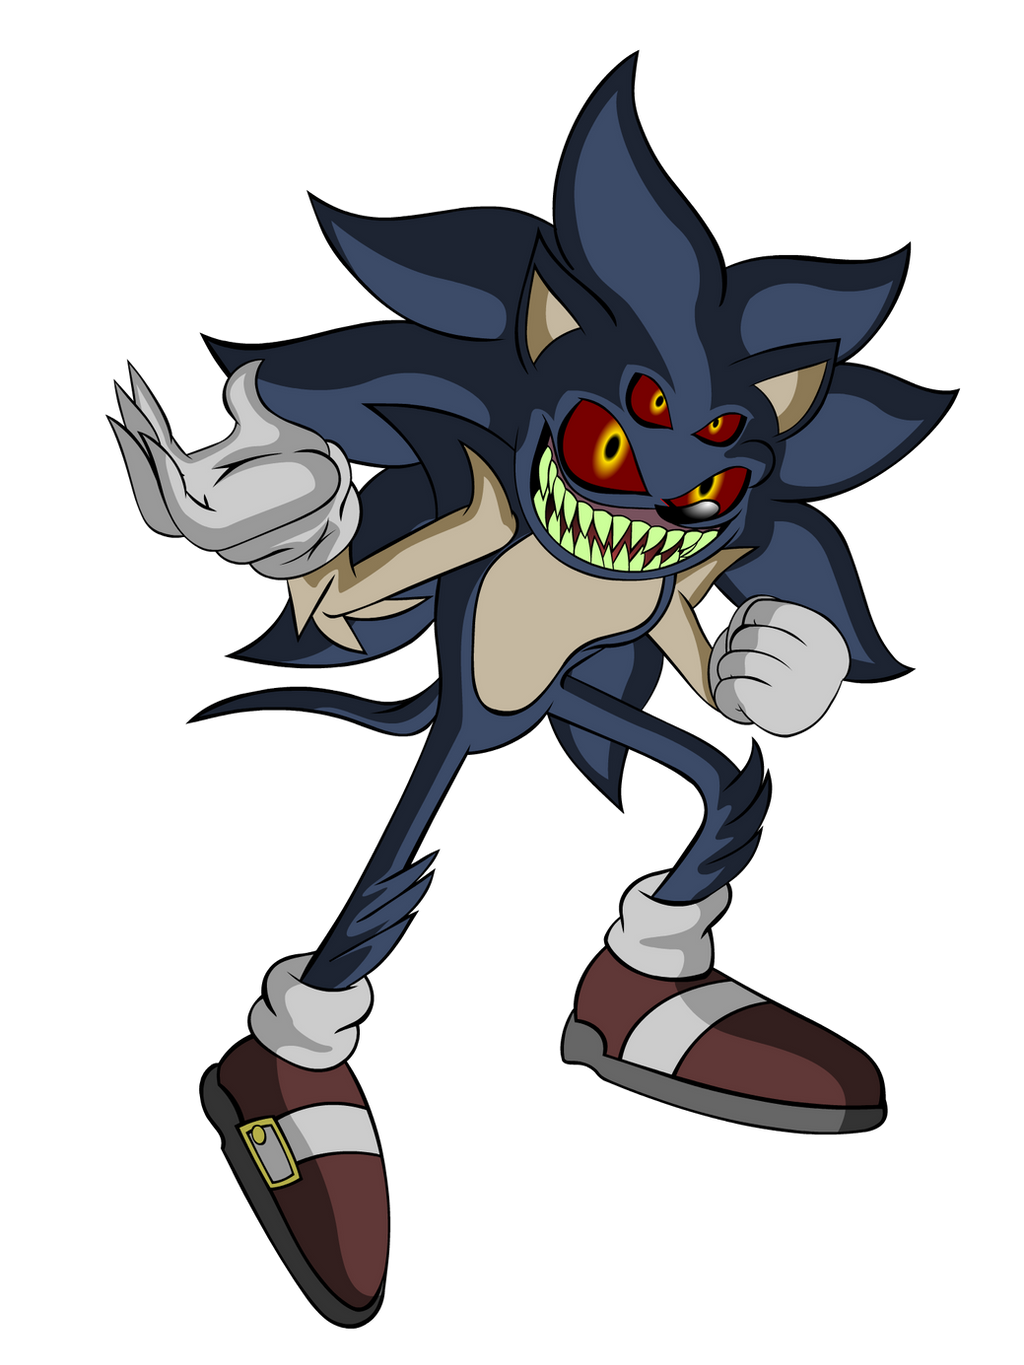 Sonic.exe (Second Form) by Teenage-Brautwurst on DeviantArt